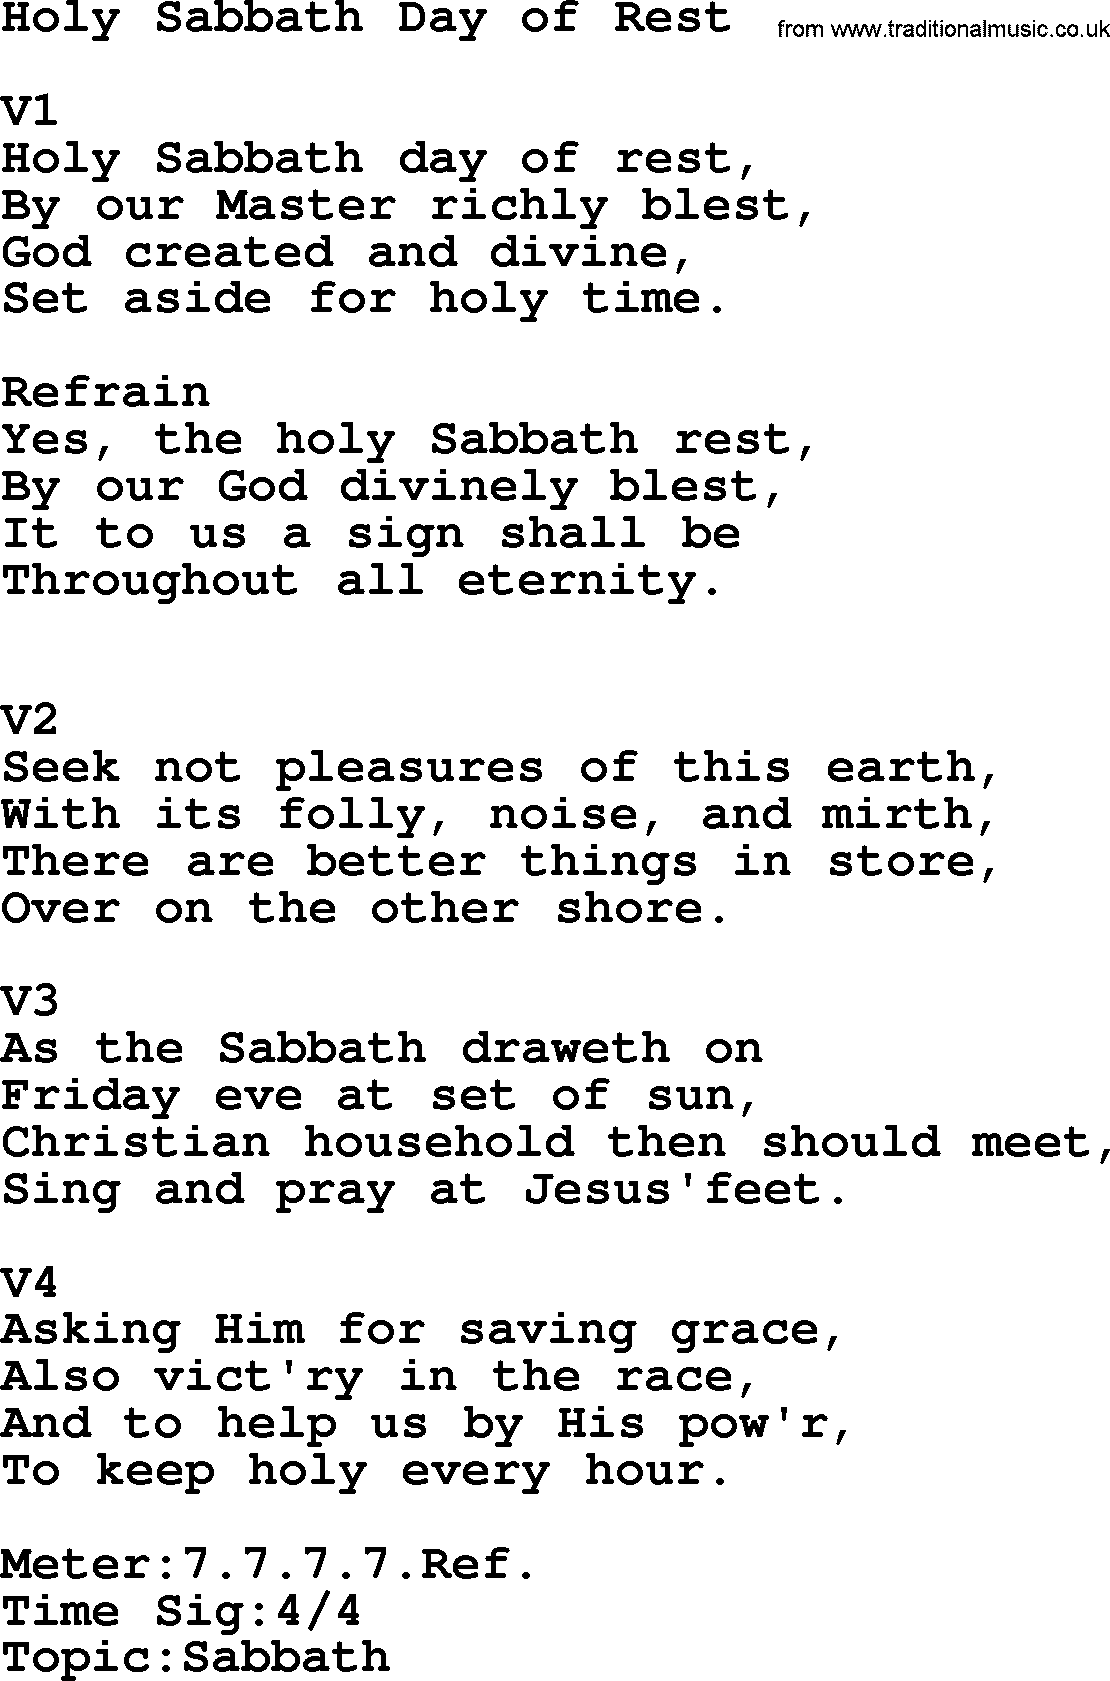 Adventist Hynms collection, Hymn: Holy Sabbath Day Of Rest, lyrics with PDF - Sabbath Day PNG